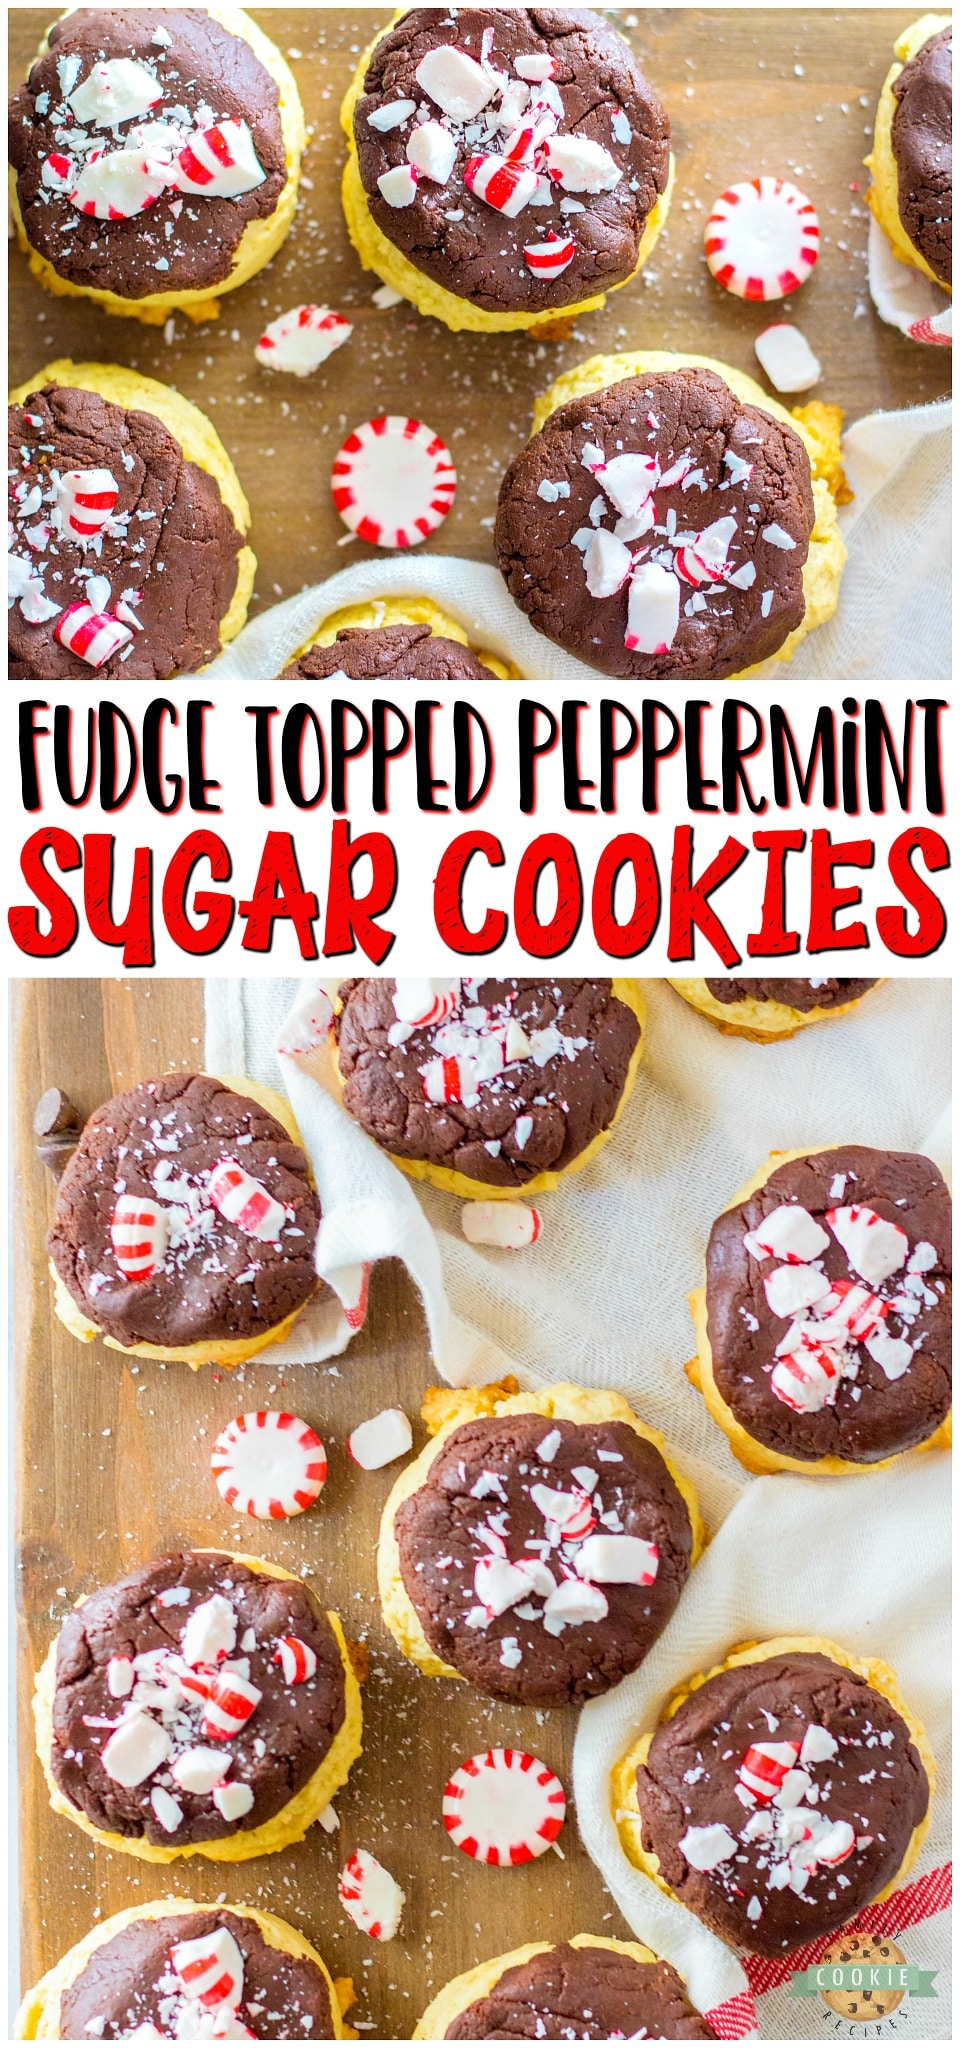 Peppermint Fudge Sugar Cookies are two favorites in one! Soft sugar cookies topped with a chocolate peppermint fudge & crushed candy canes for an over-the-top Christmas treat!